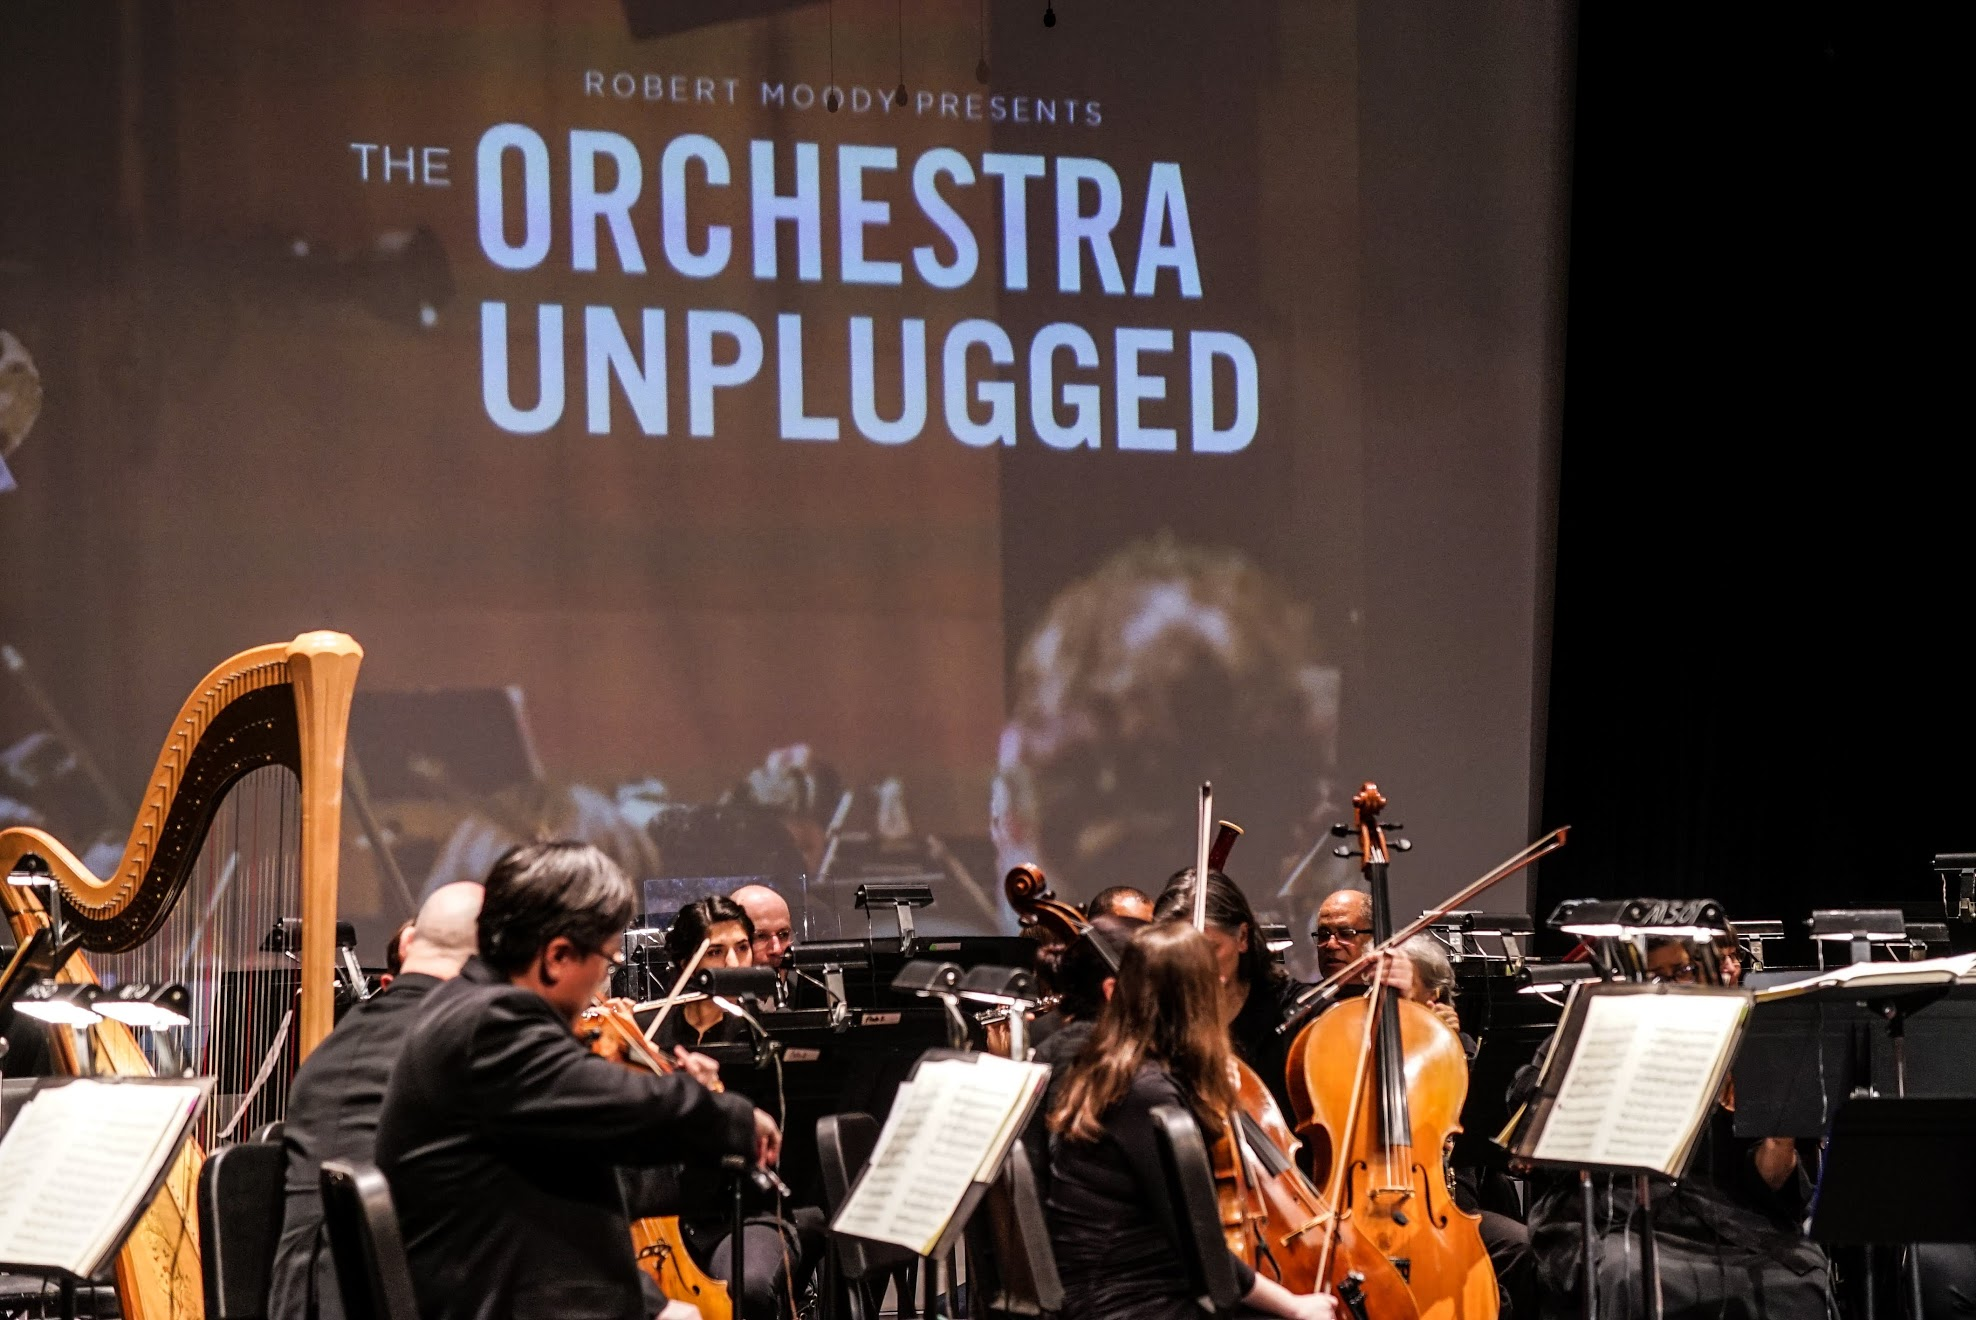 Orchestra playing with Orchestra Unplugged Logo projected onto screen.